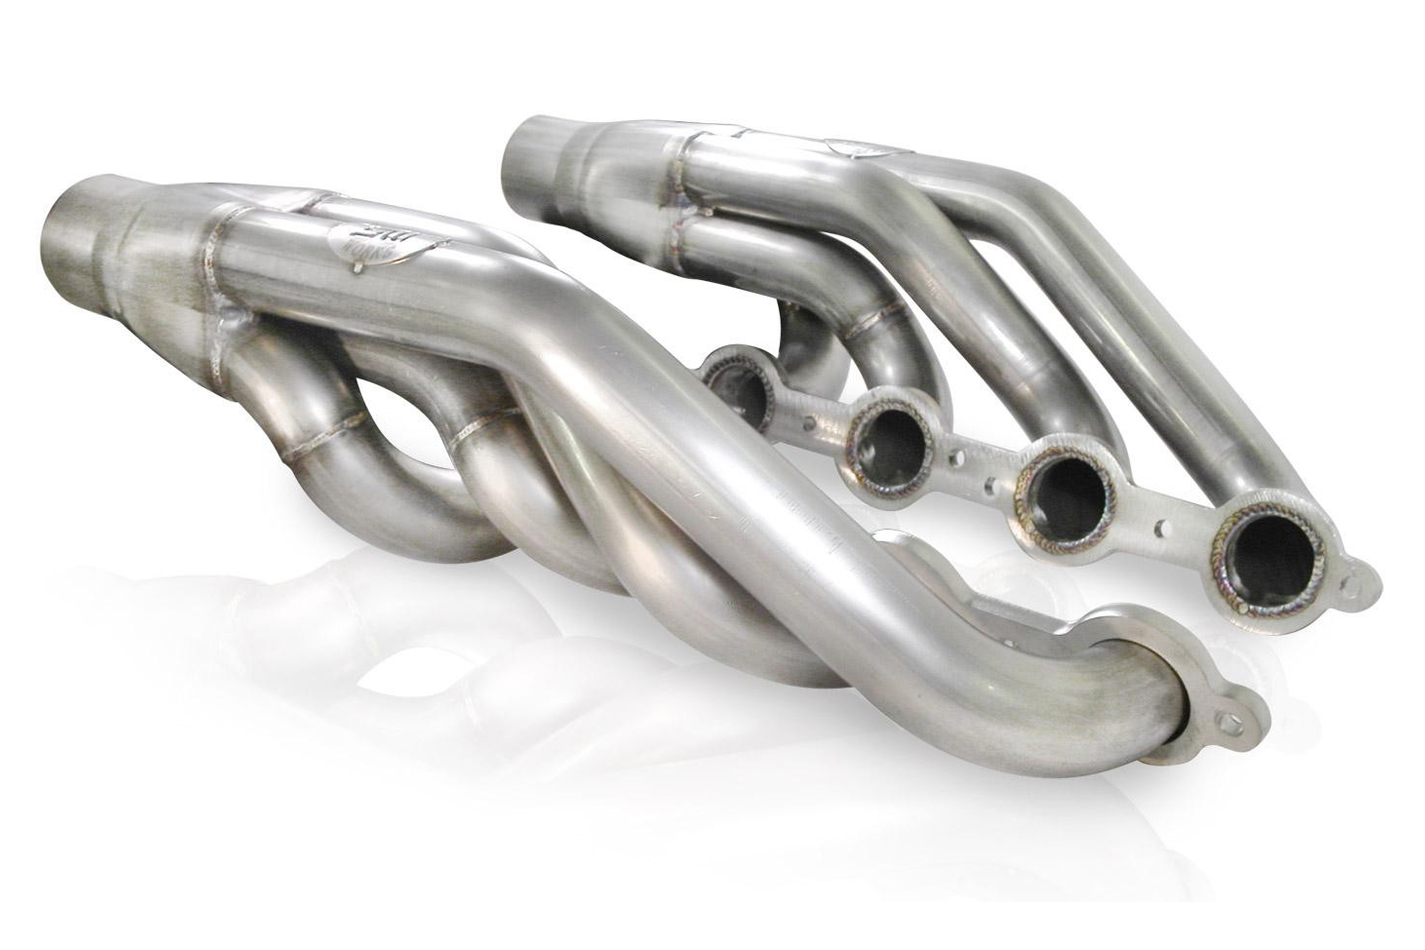 Stainless Works LSXT Headers, Upswept LS Turbo Swap, 1-7/8 in Primary, 3 in Collectors, Stainless, Natural, GM LS-Series, Kit